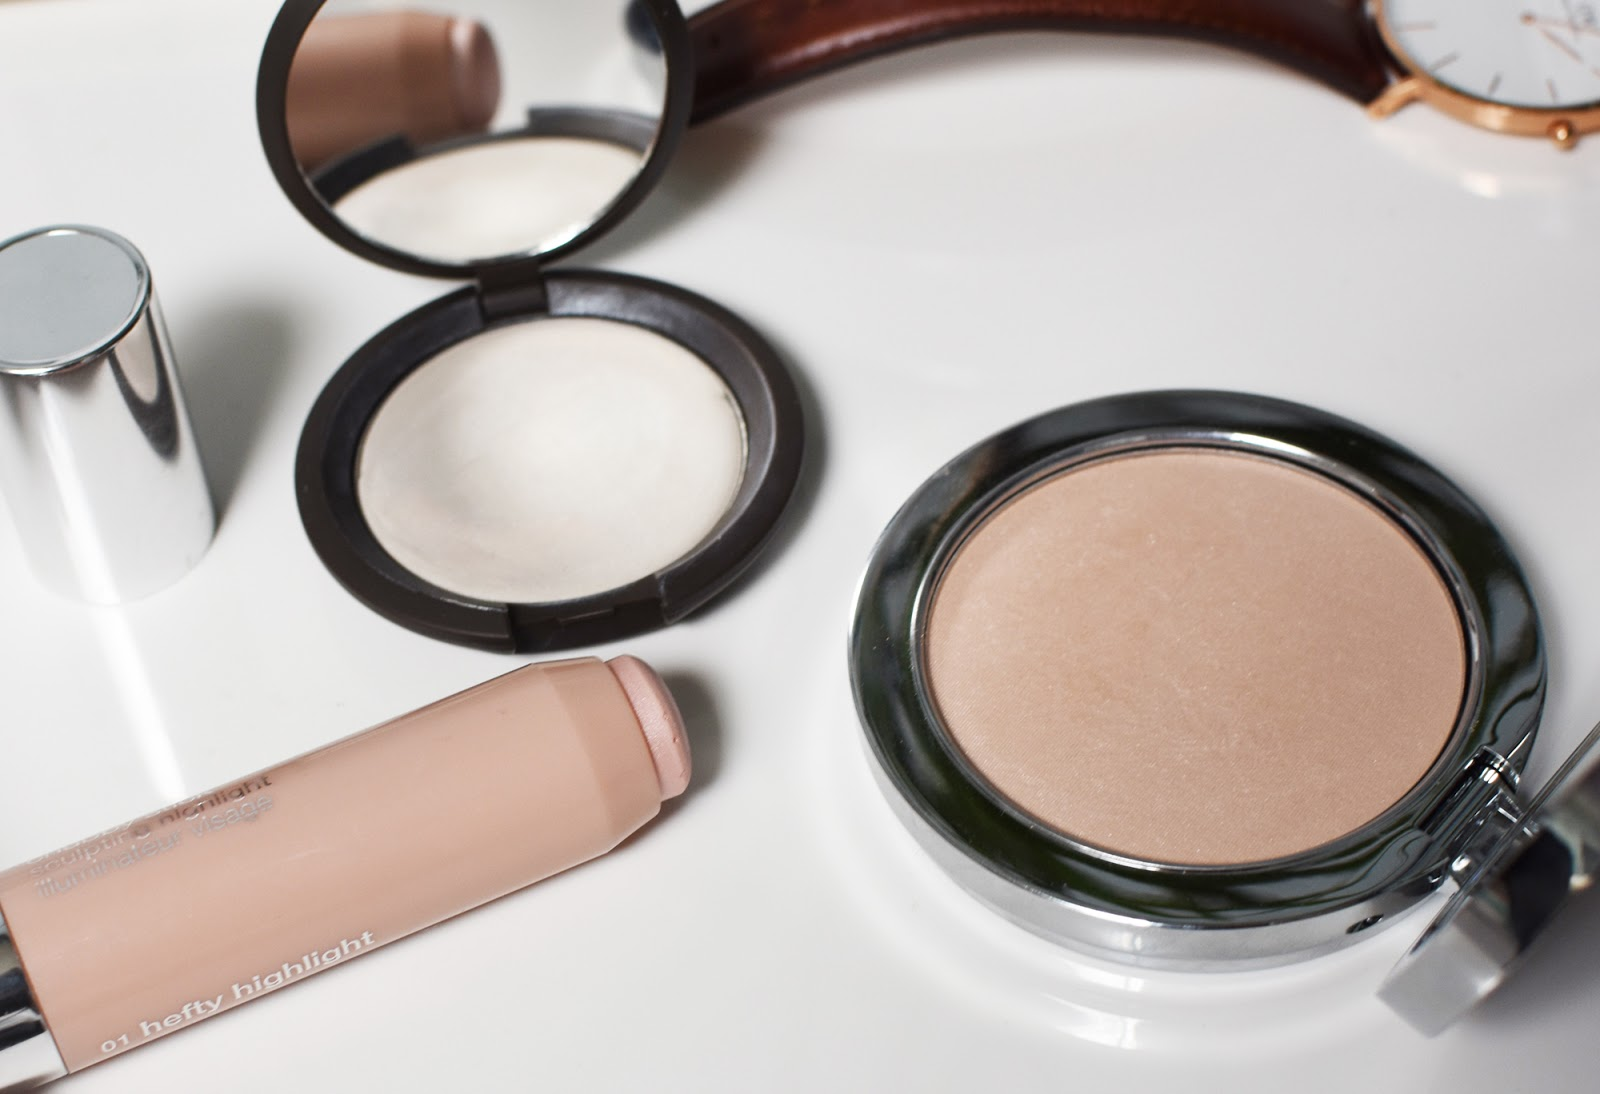 My fav highlighters of the moment: Clinique Hefty Highlight Stick, Becca Shimmering Skin Perfecter Poured in Pearl, and Rodial Instaglam Compact.